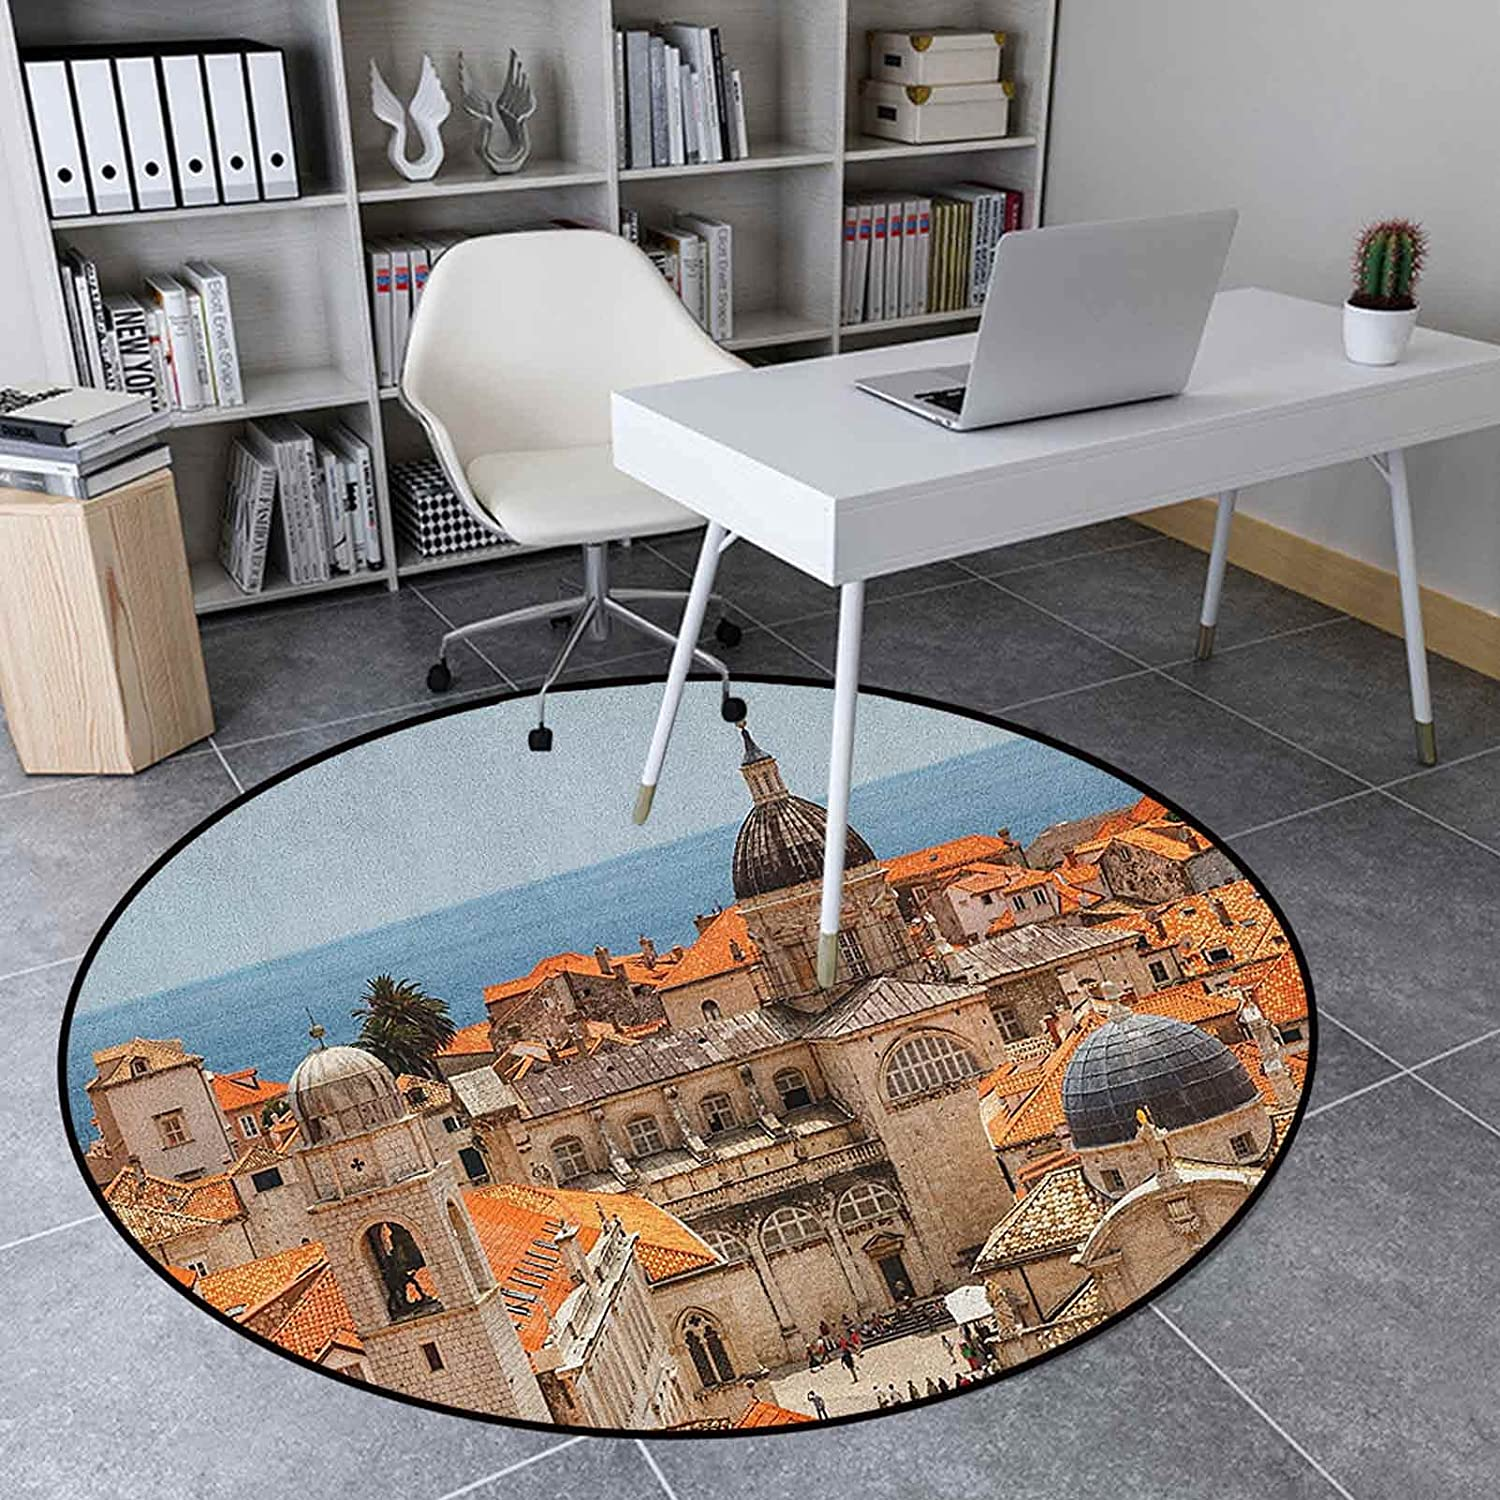 European favorite Area Rug Round 4.6 Ft Great interest Home Mat Floor Decor Inches Soft